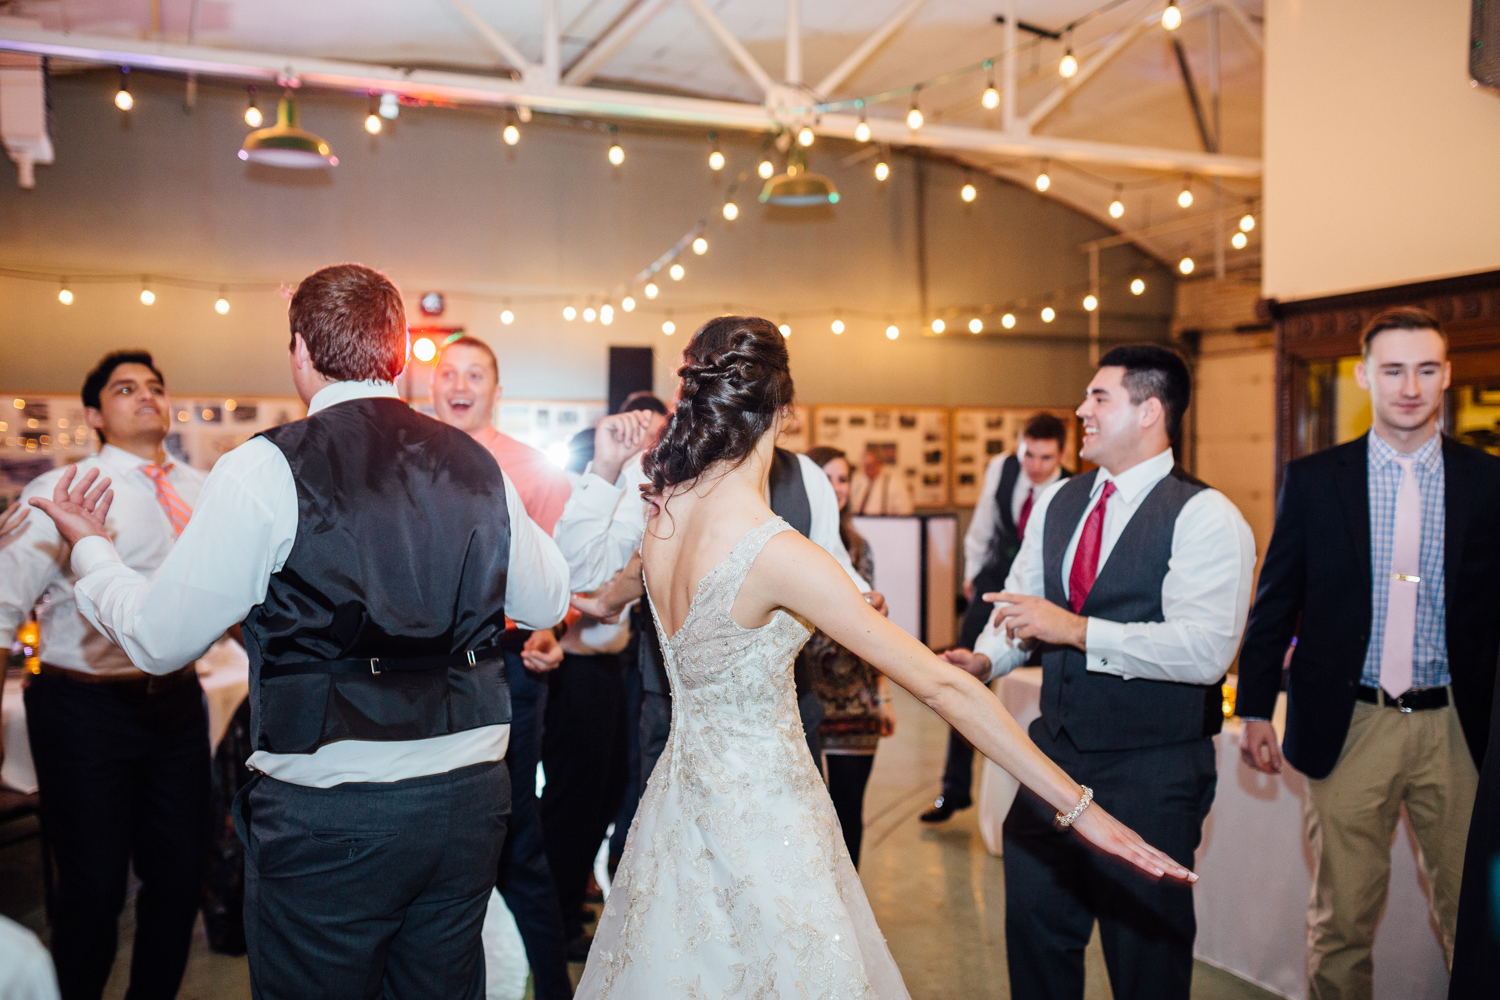 Fun, Intimate Spring Wedding by Corrie Mick Photography-111.jpg